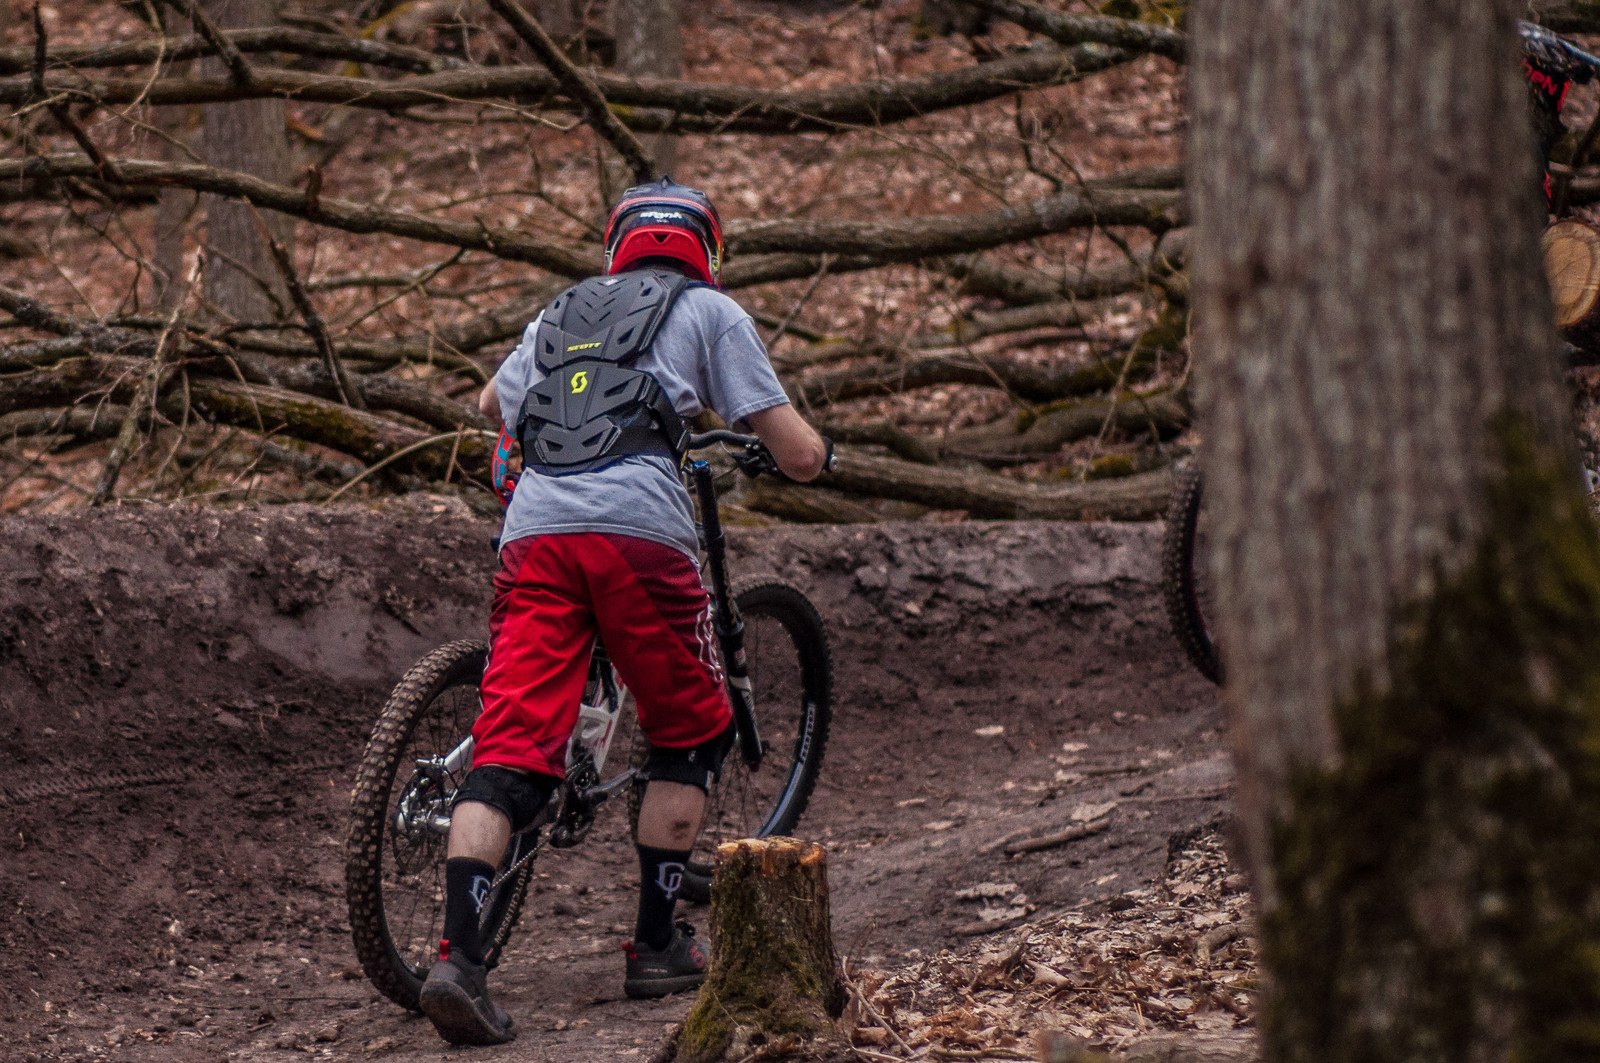 Back to the top - Romuald_Manach - Mountain Biking Pictures - Vital MTB